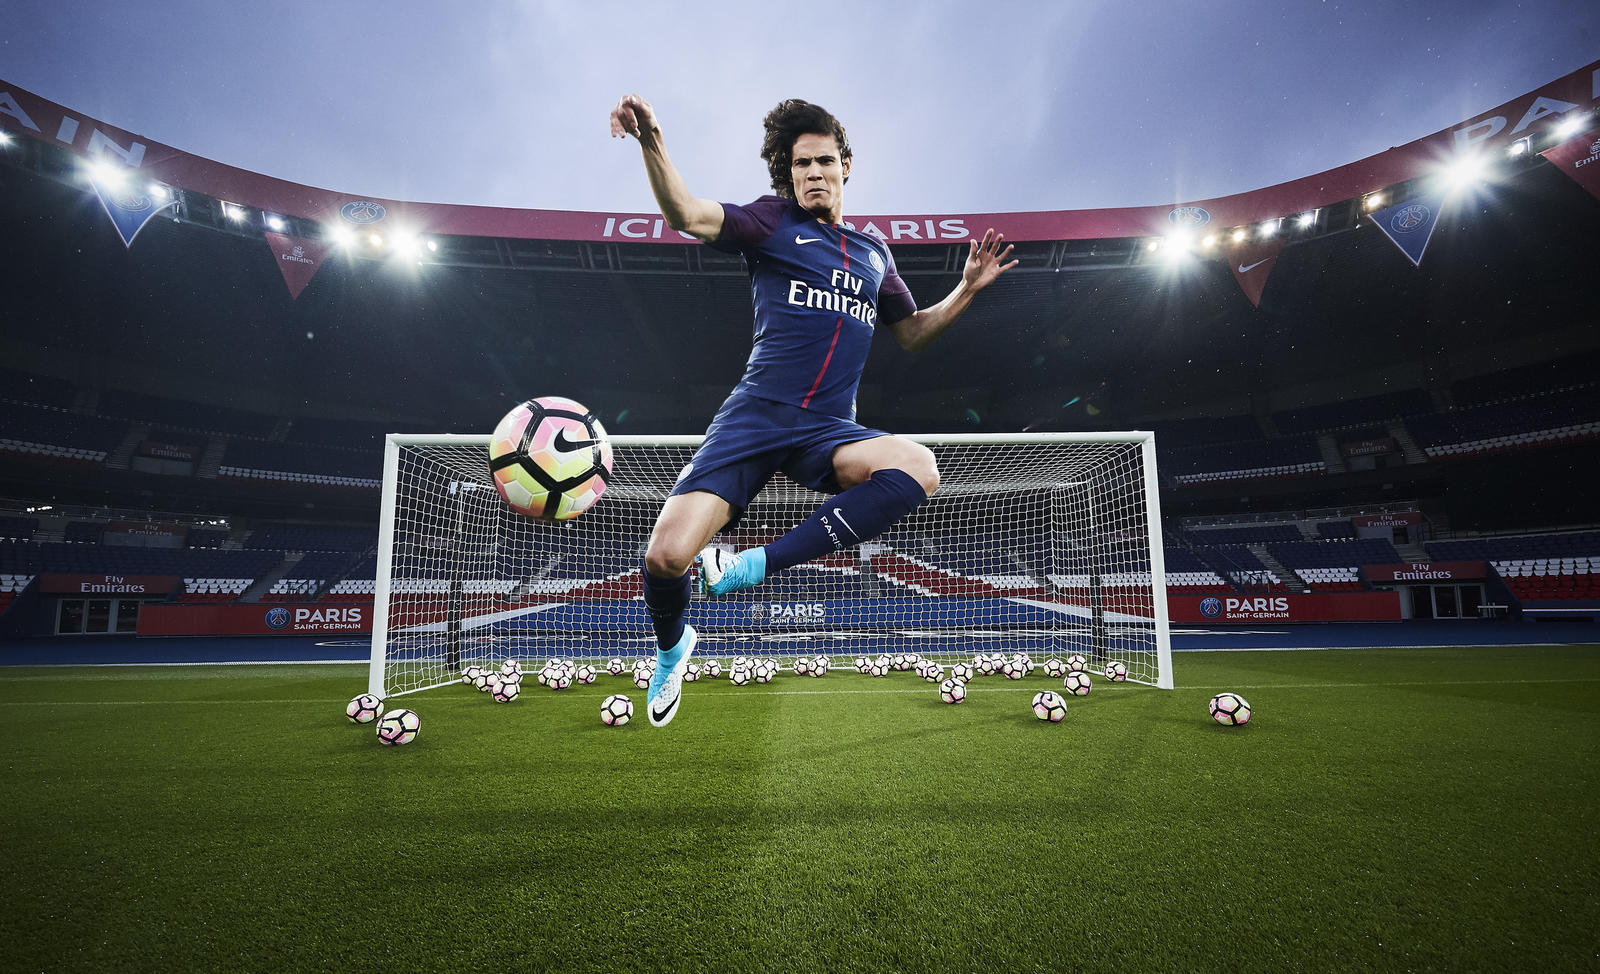 Edinson Cavani Leading Goalscorer In France With 49 Goals All Competitions Presents The New PSG Home Kit For 2017 18